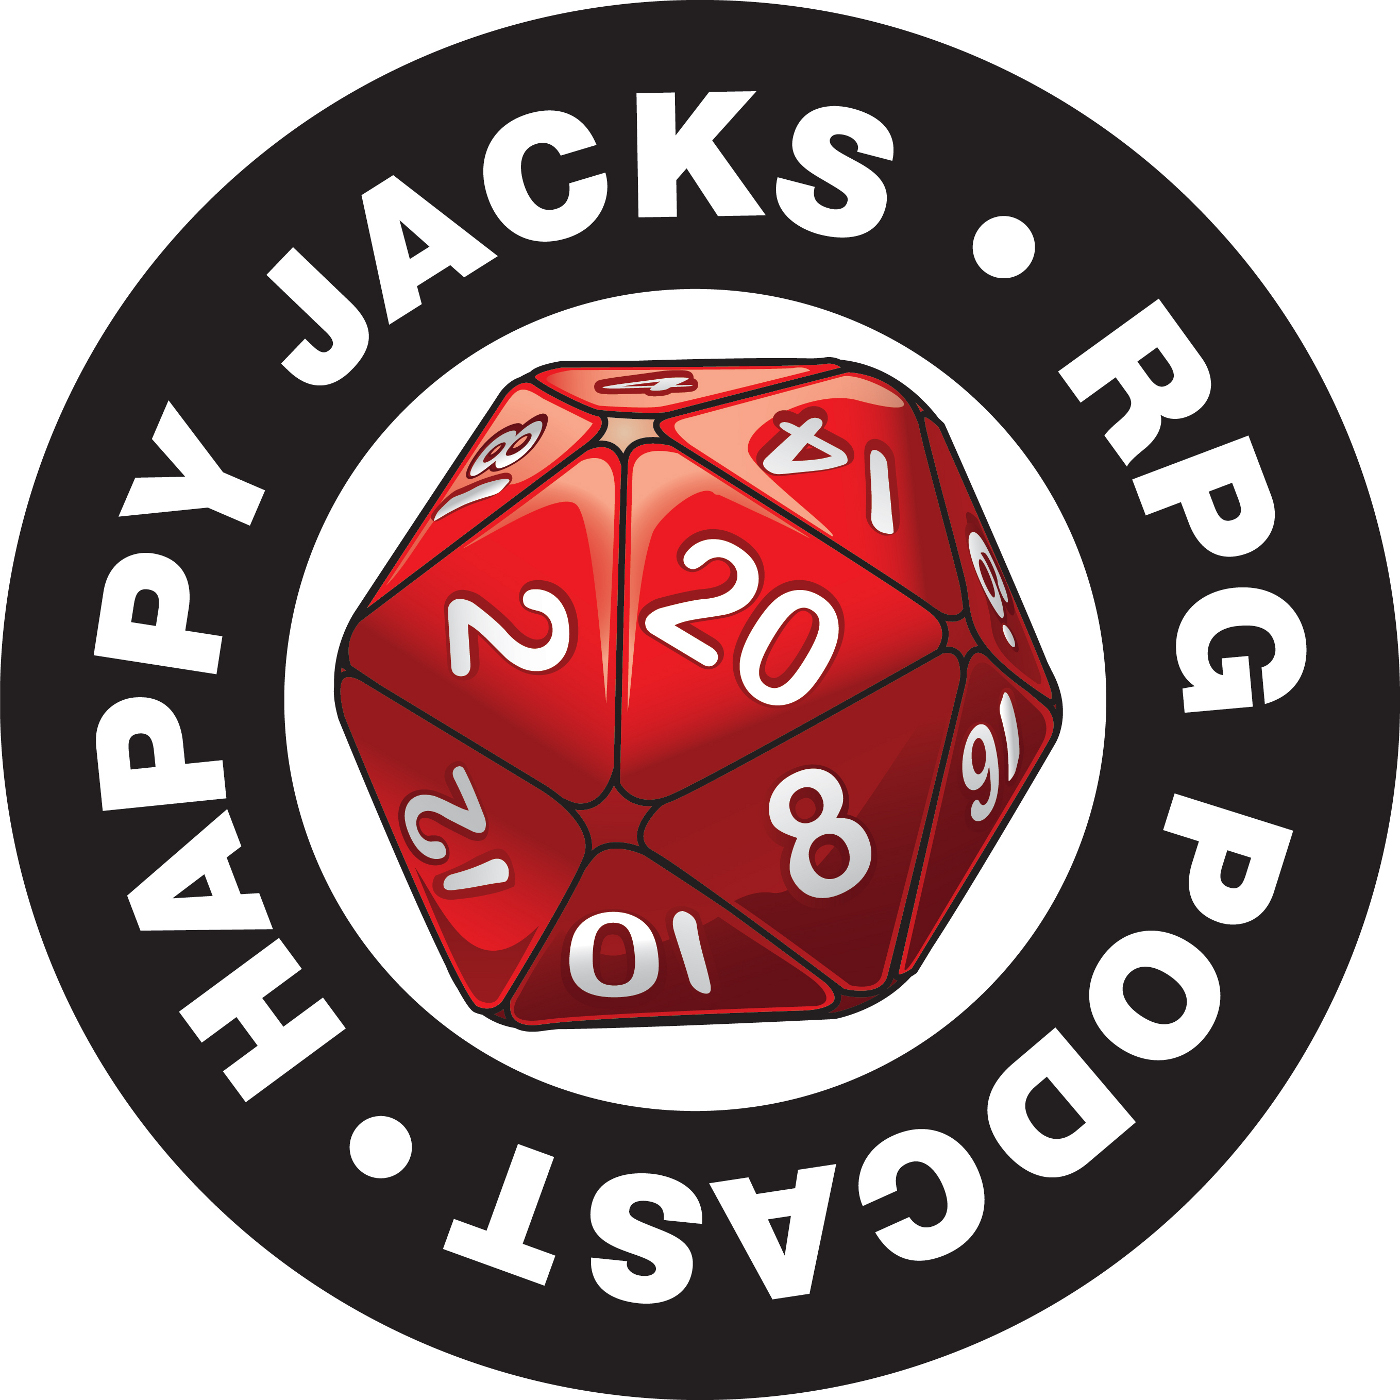 Happy Jacks RPG Actual Play logo